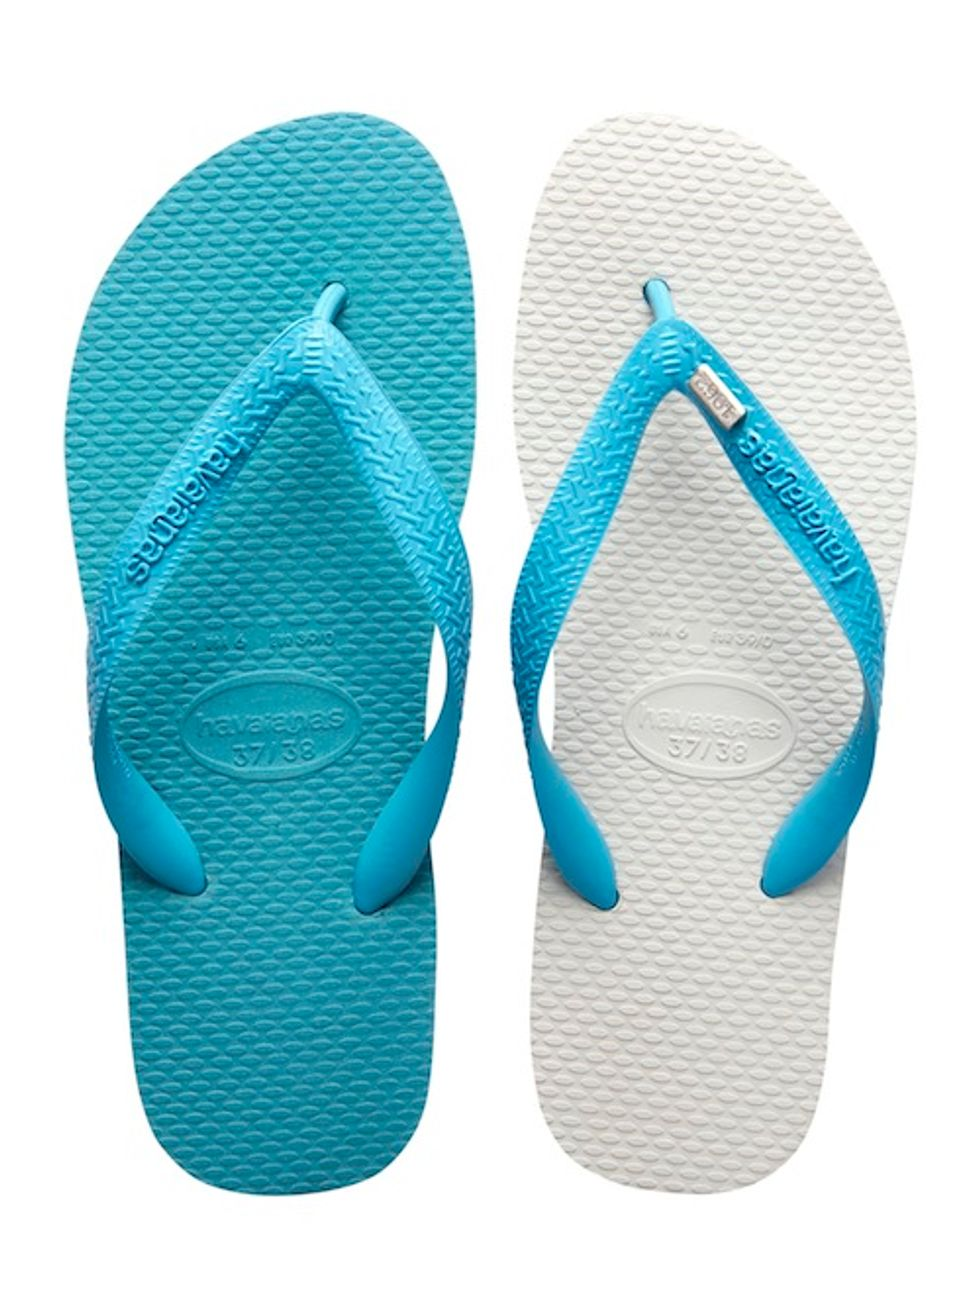 Win a Year's Supply of Havaianas Flip Flops!